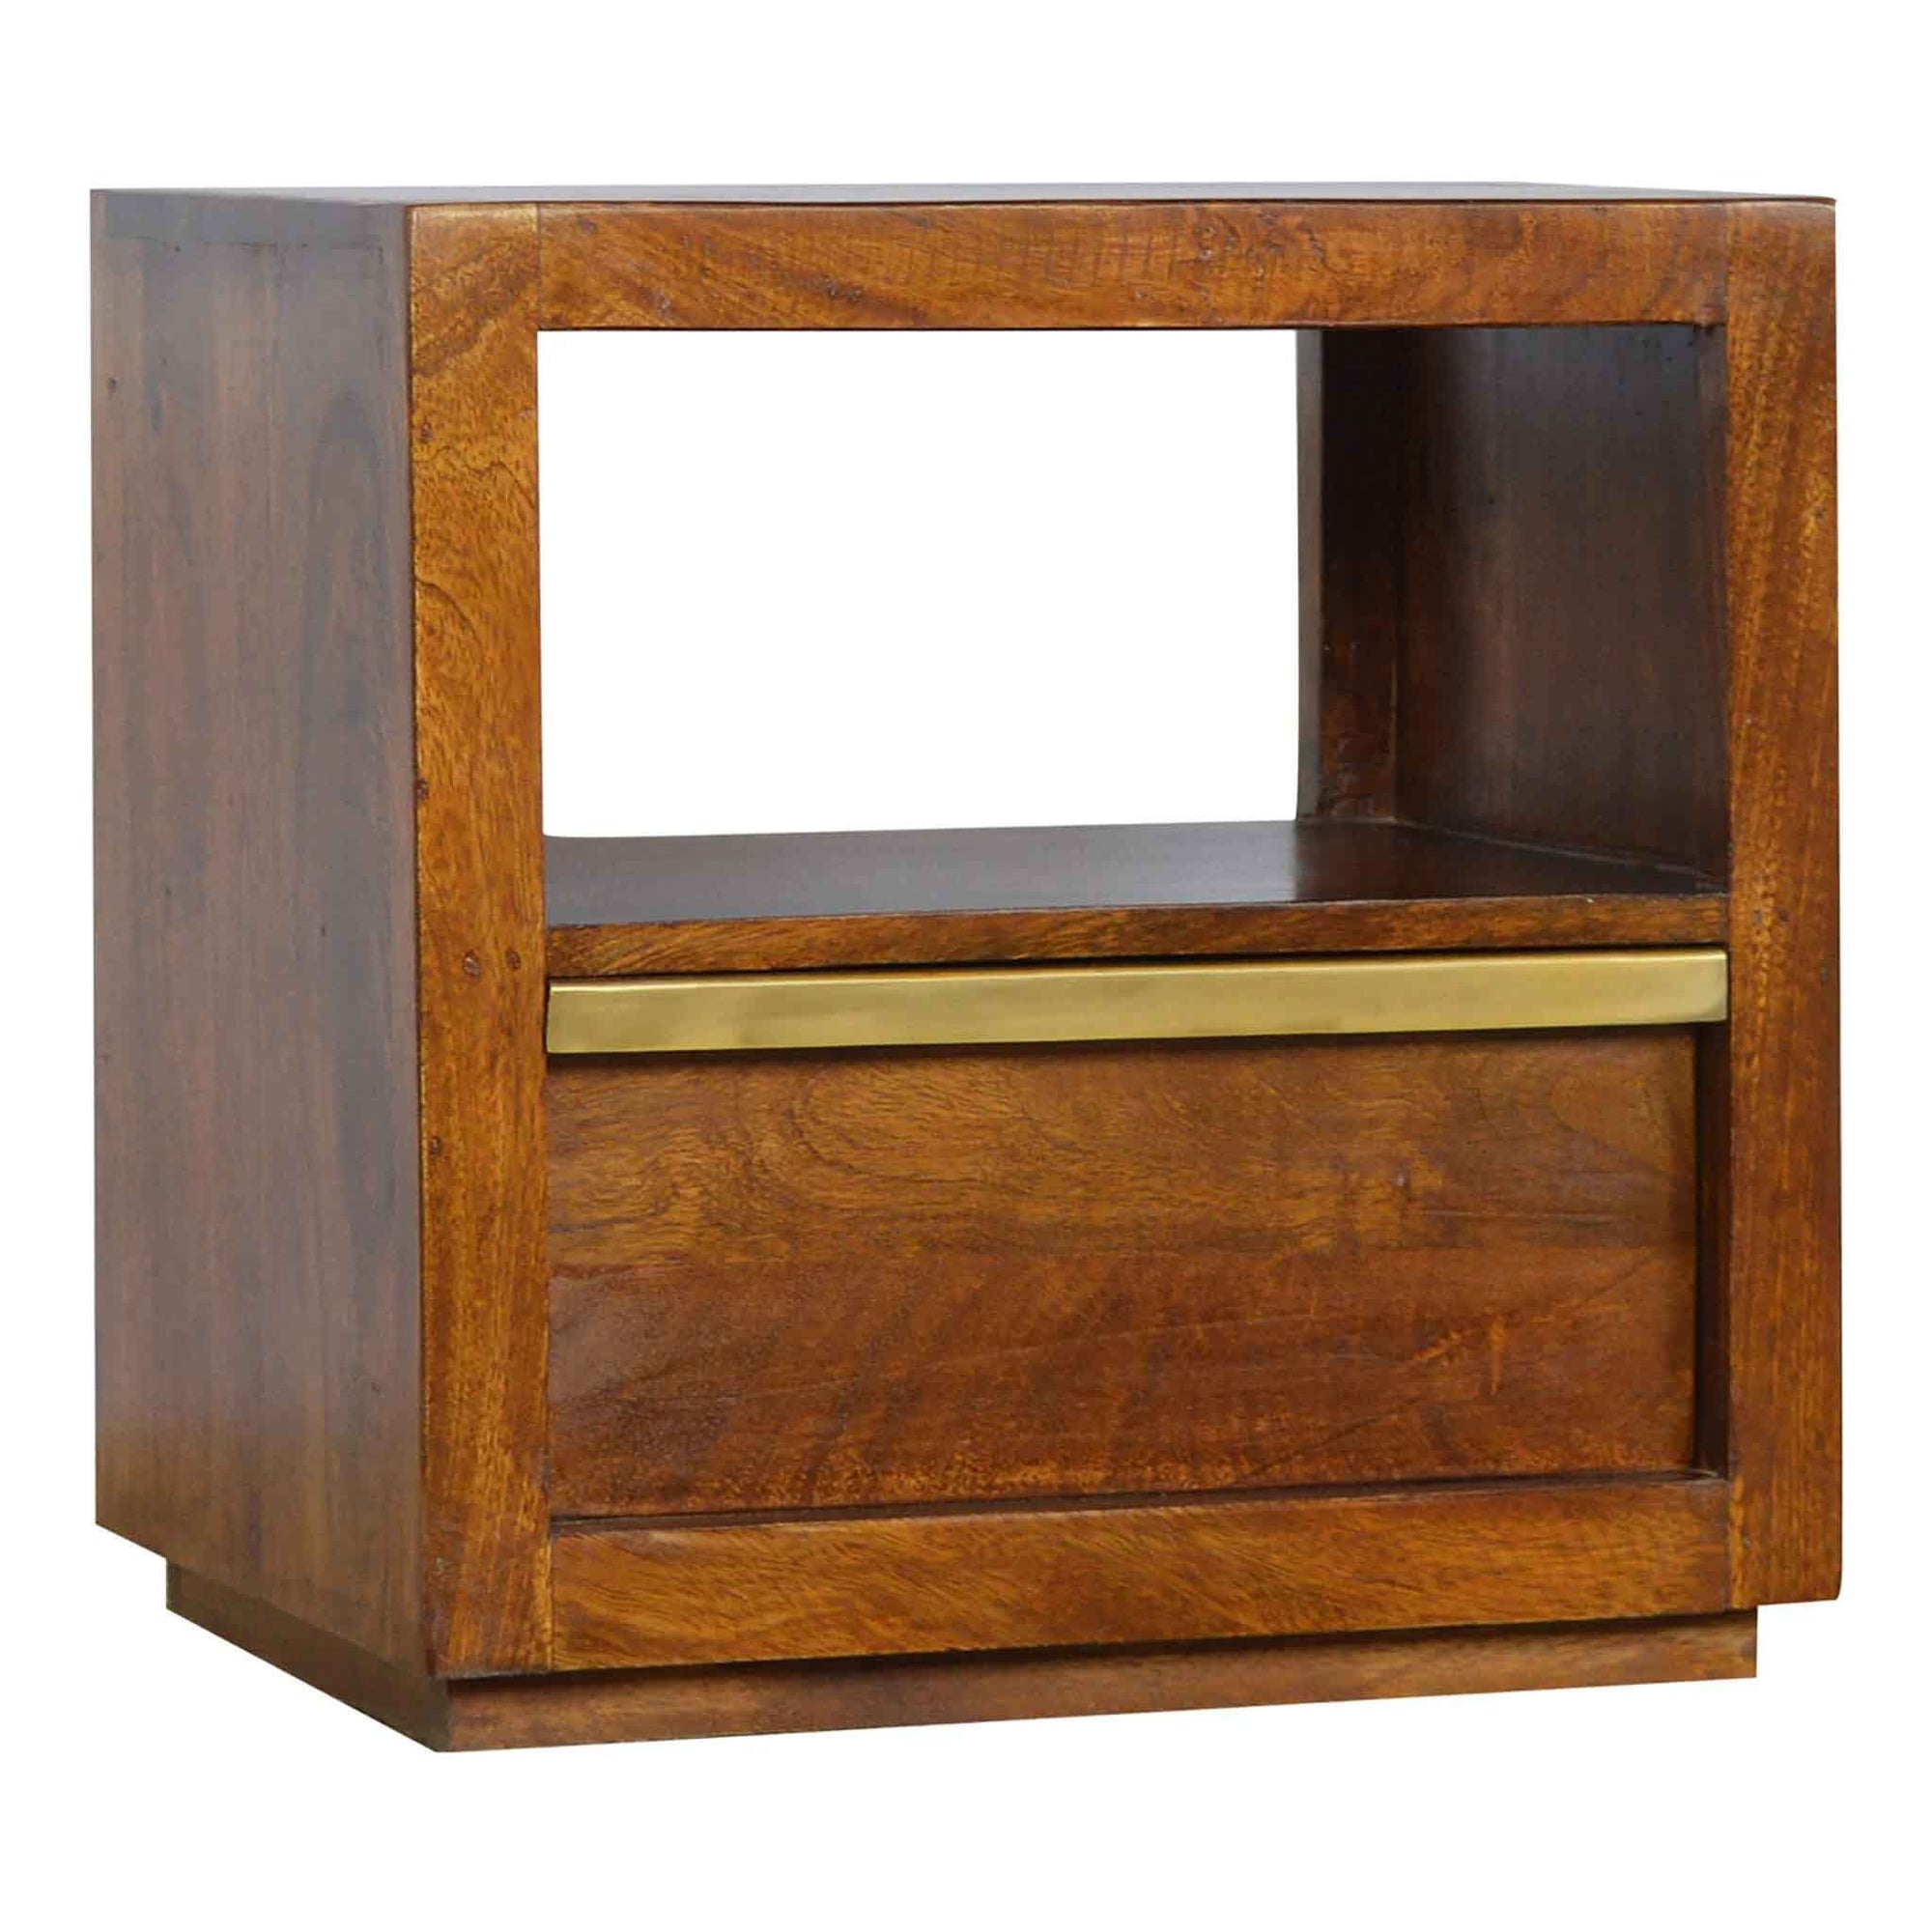 Artisan Drawer Chestnut Bedside Table with Drawer by Roseland Furniture